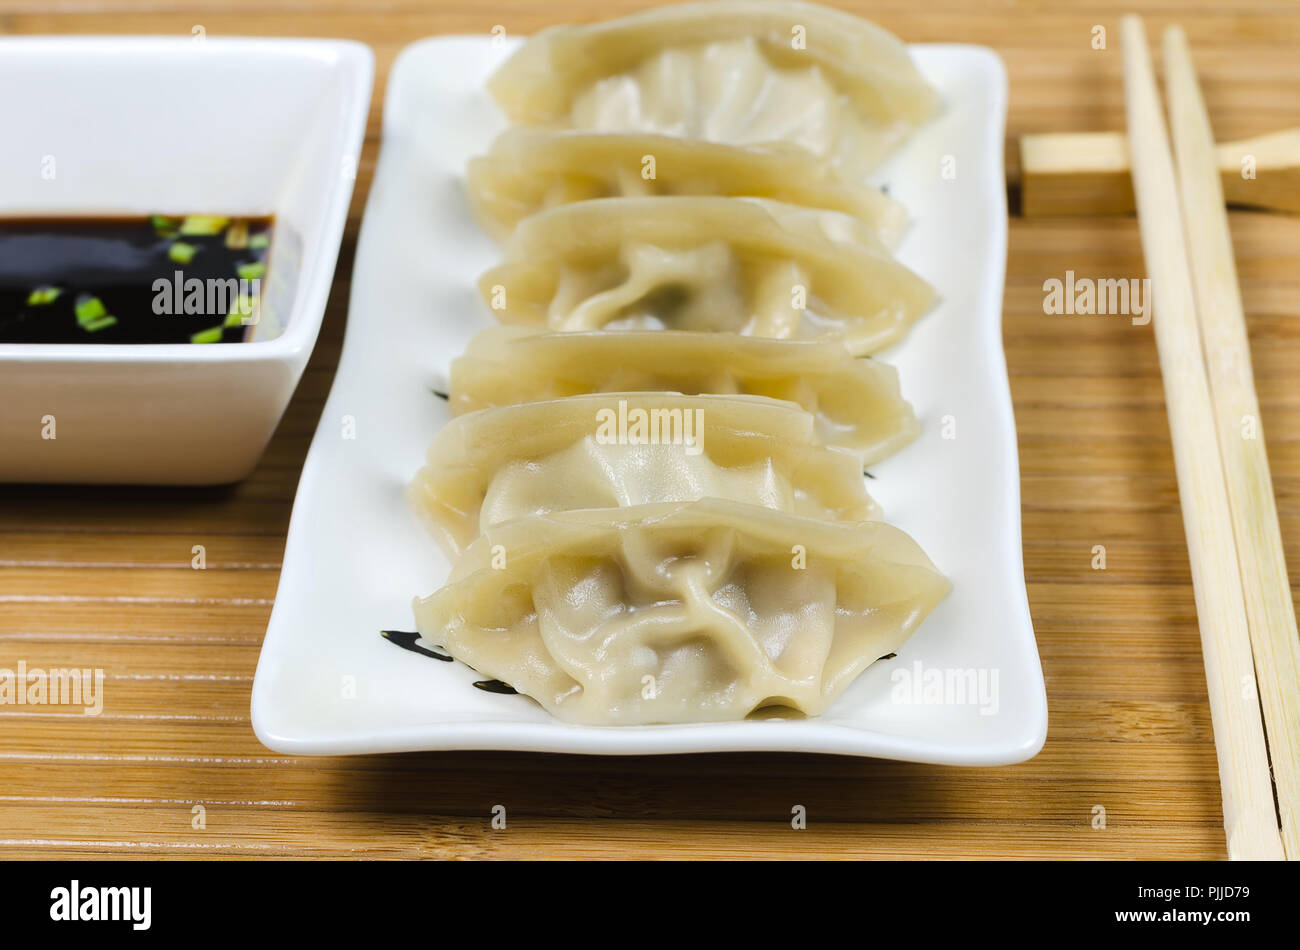 Steamed gyoza dumplings on white plate with soy souse. - Stock Image